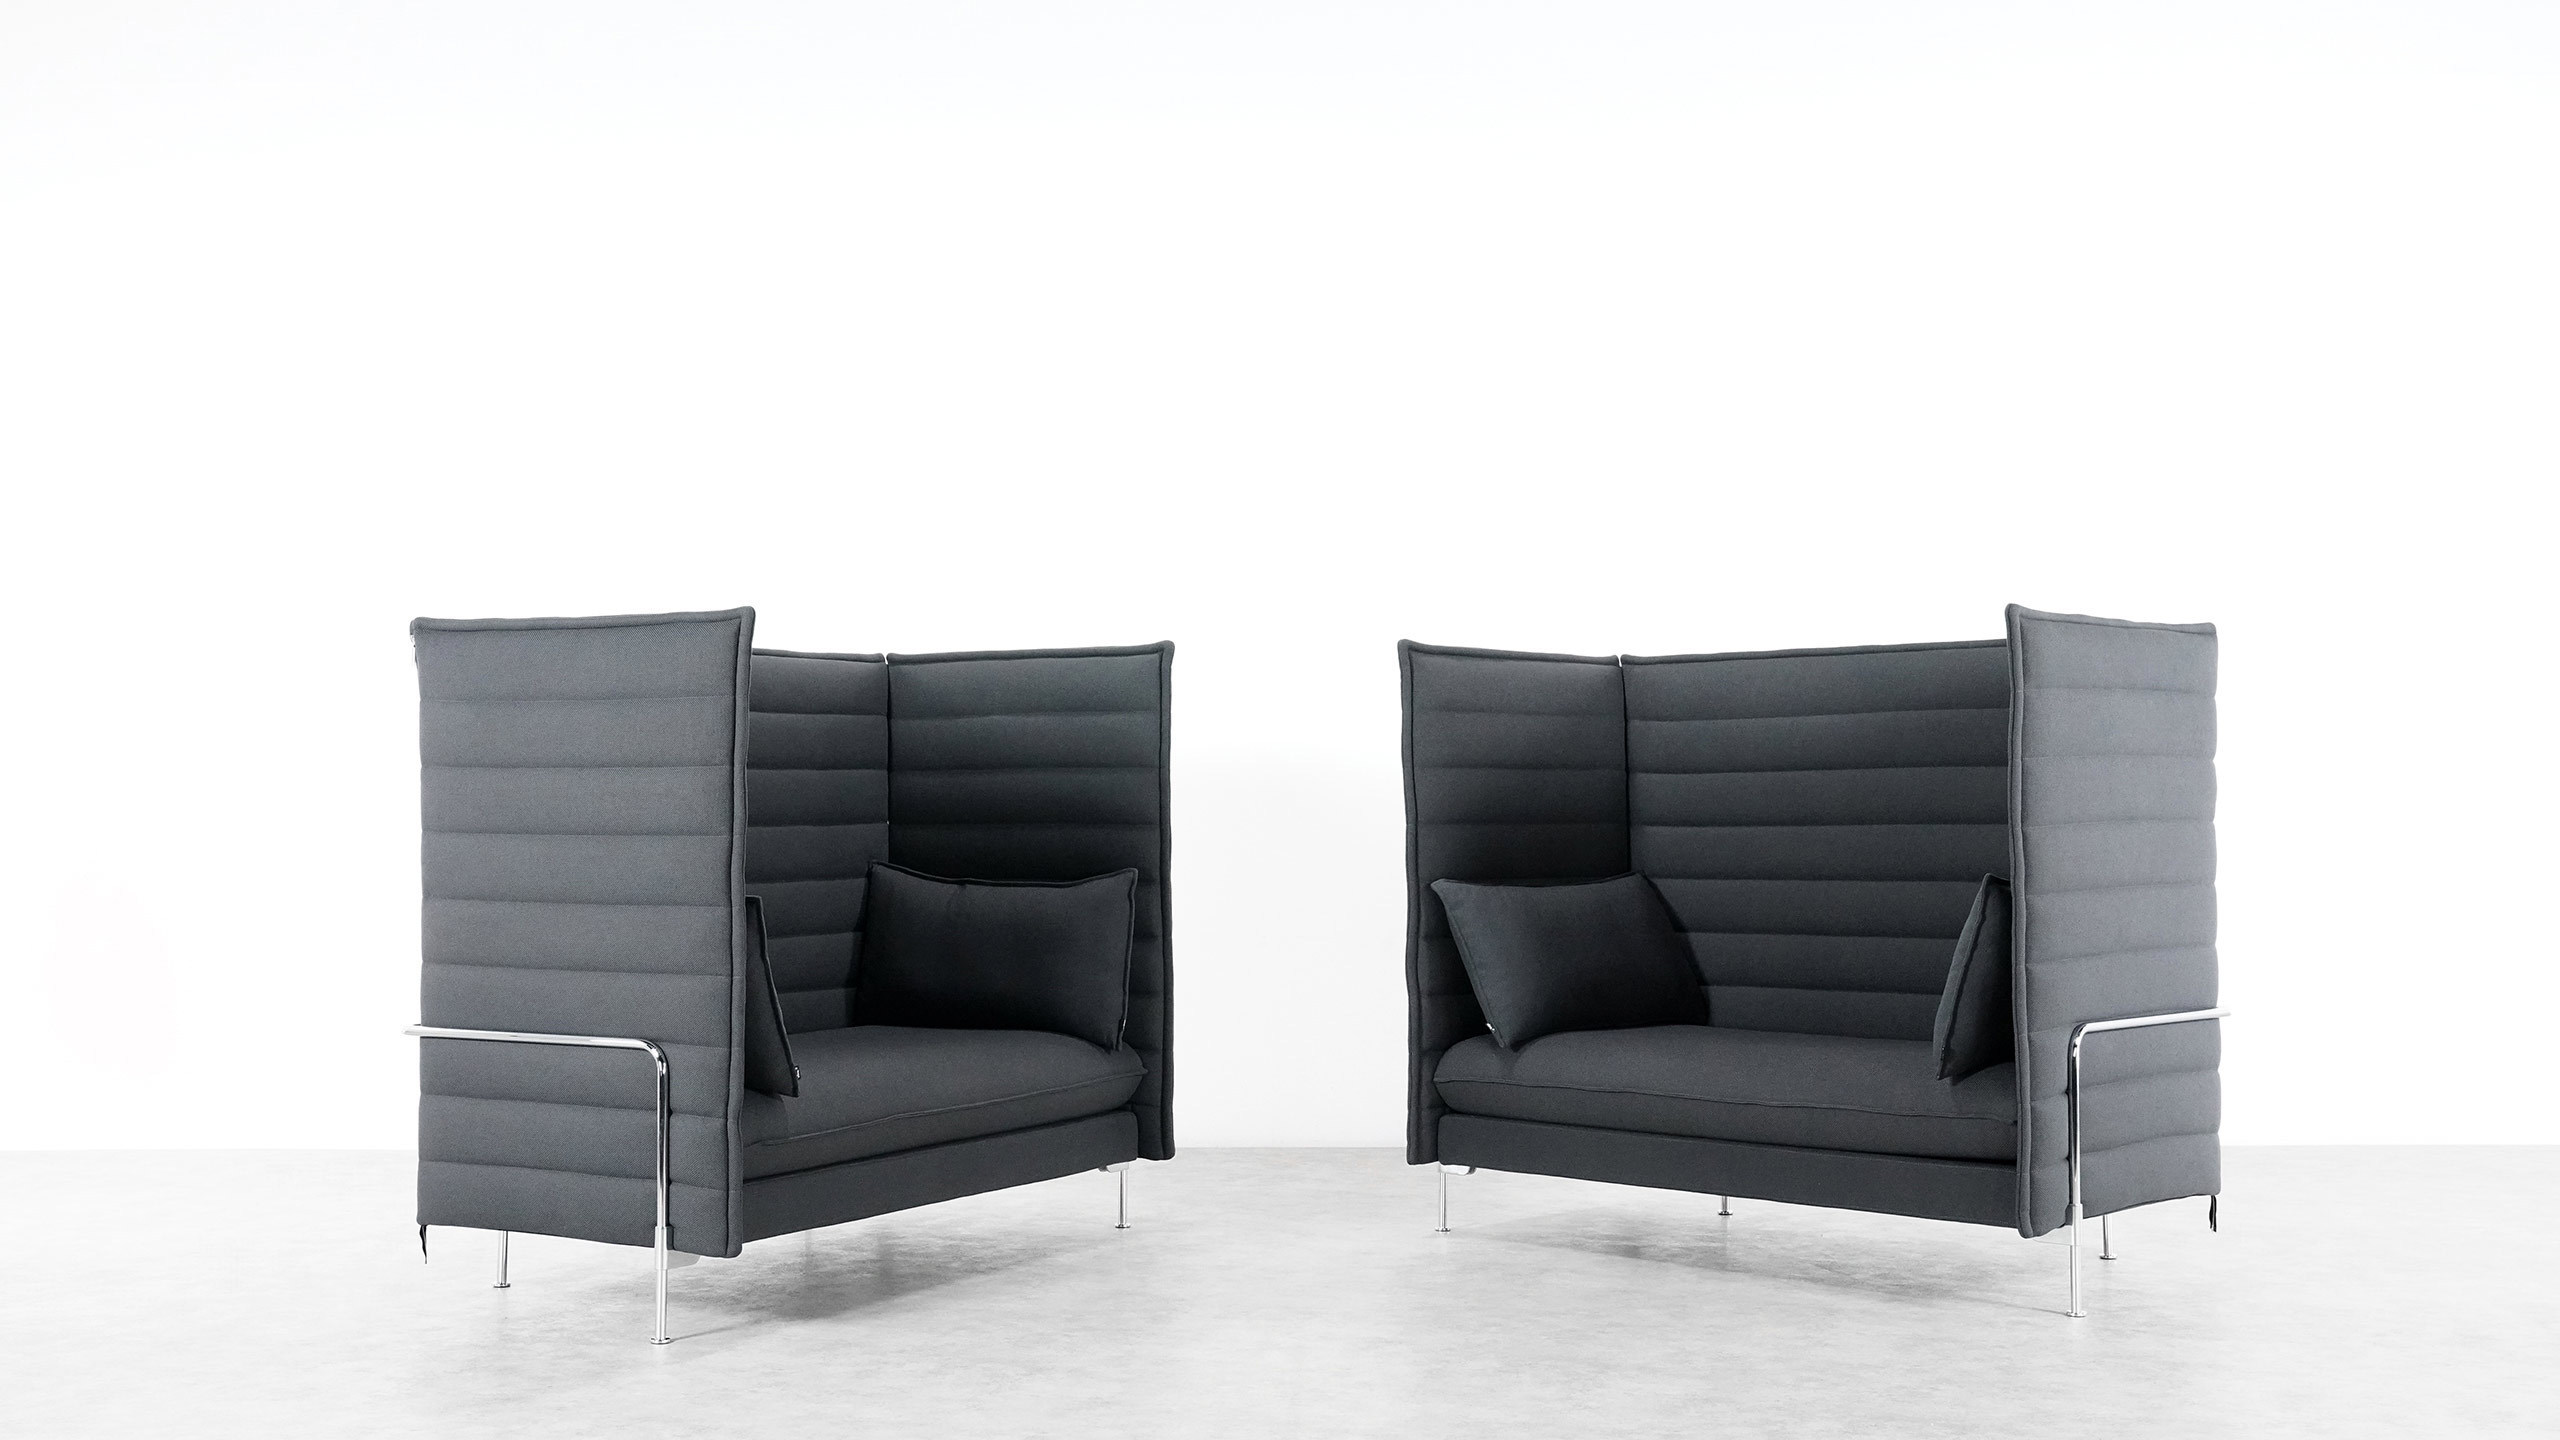 Vitra Mobile Elements Vitra Alcove Sofa By Ronan And Erwan Bouroullec